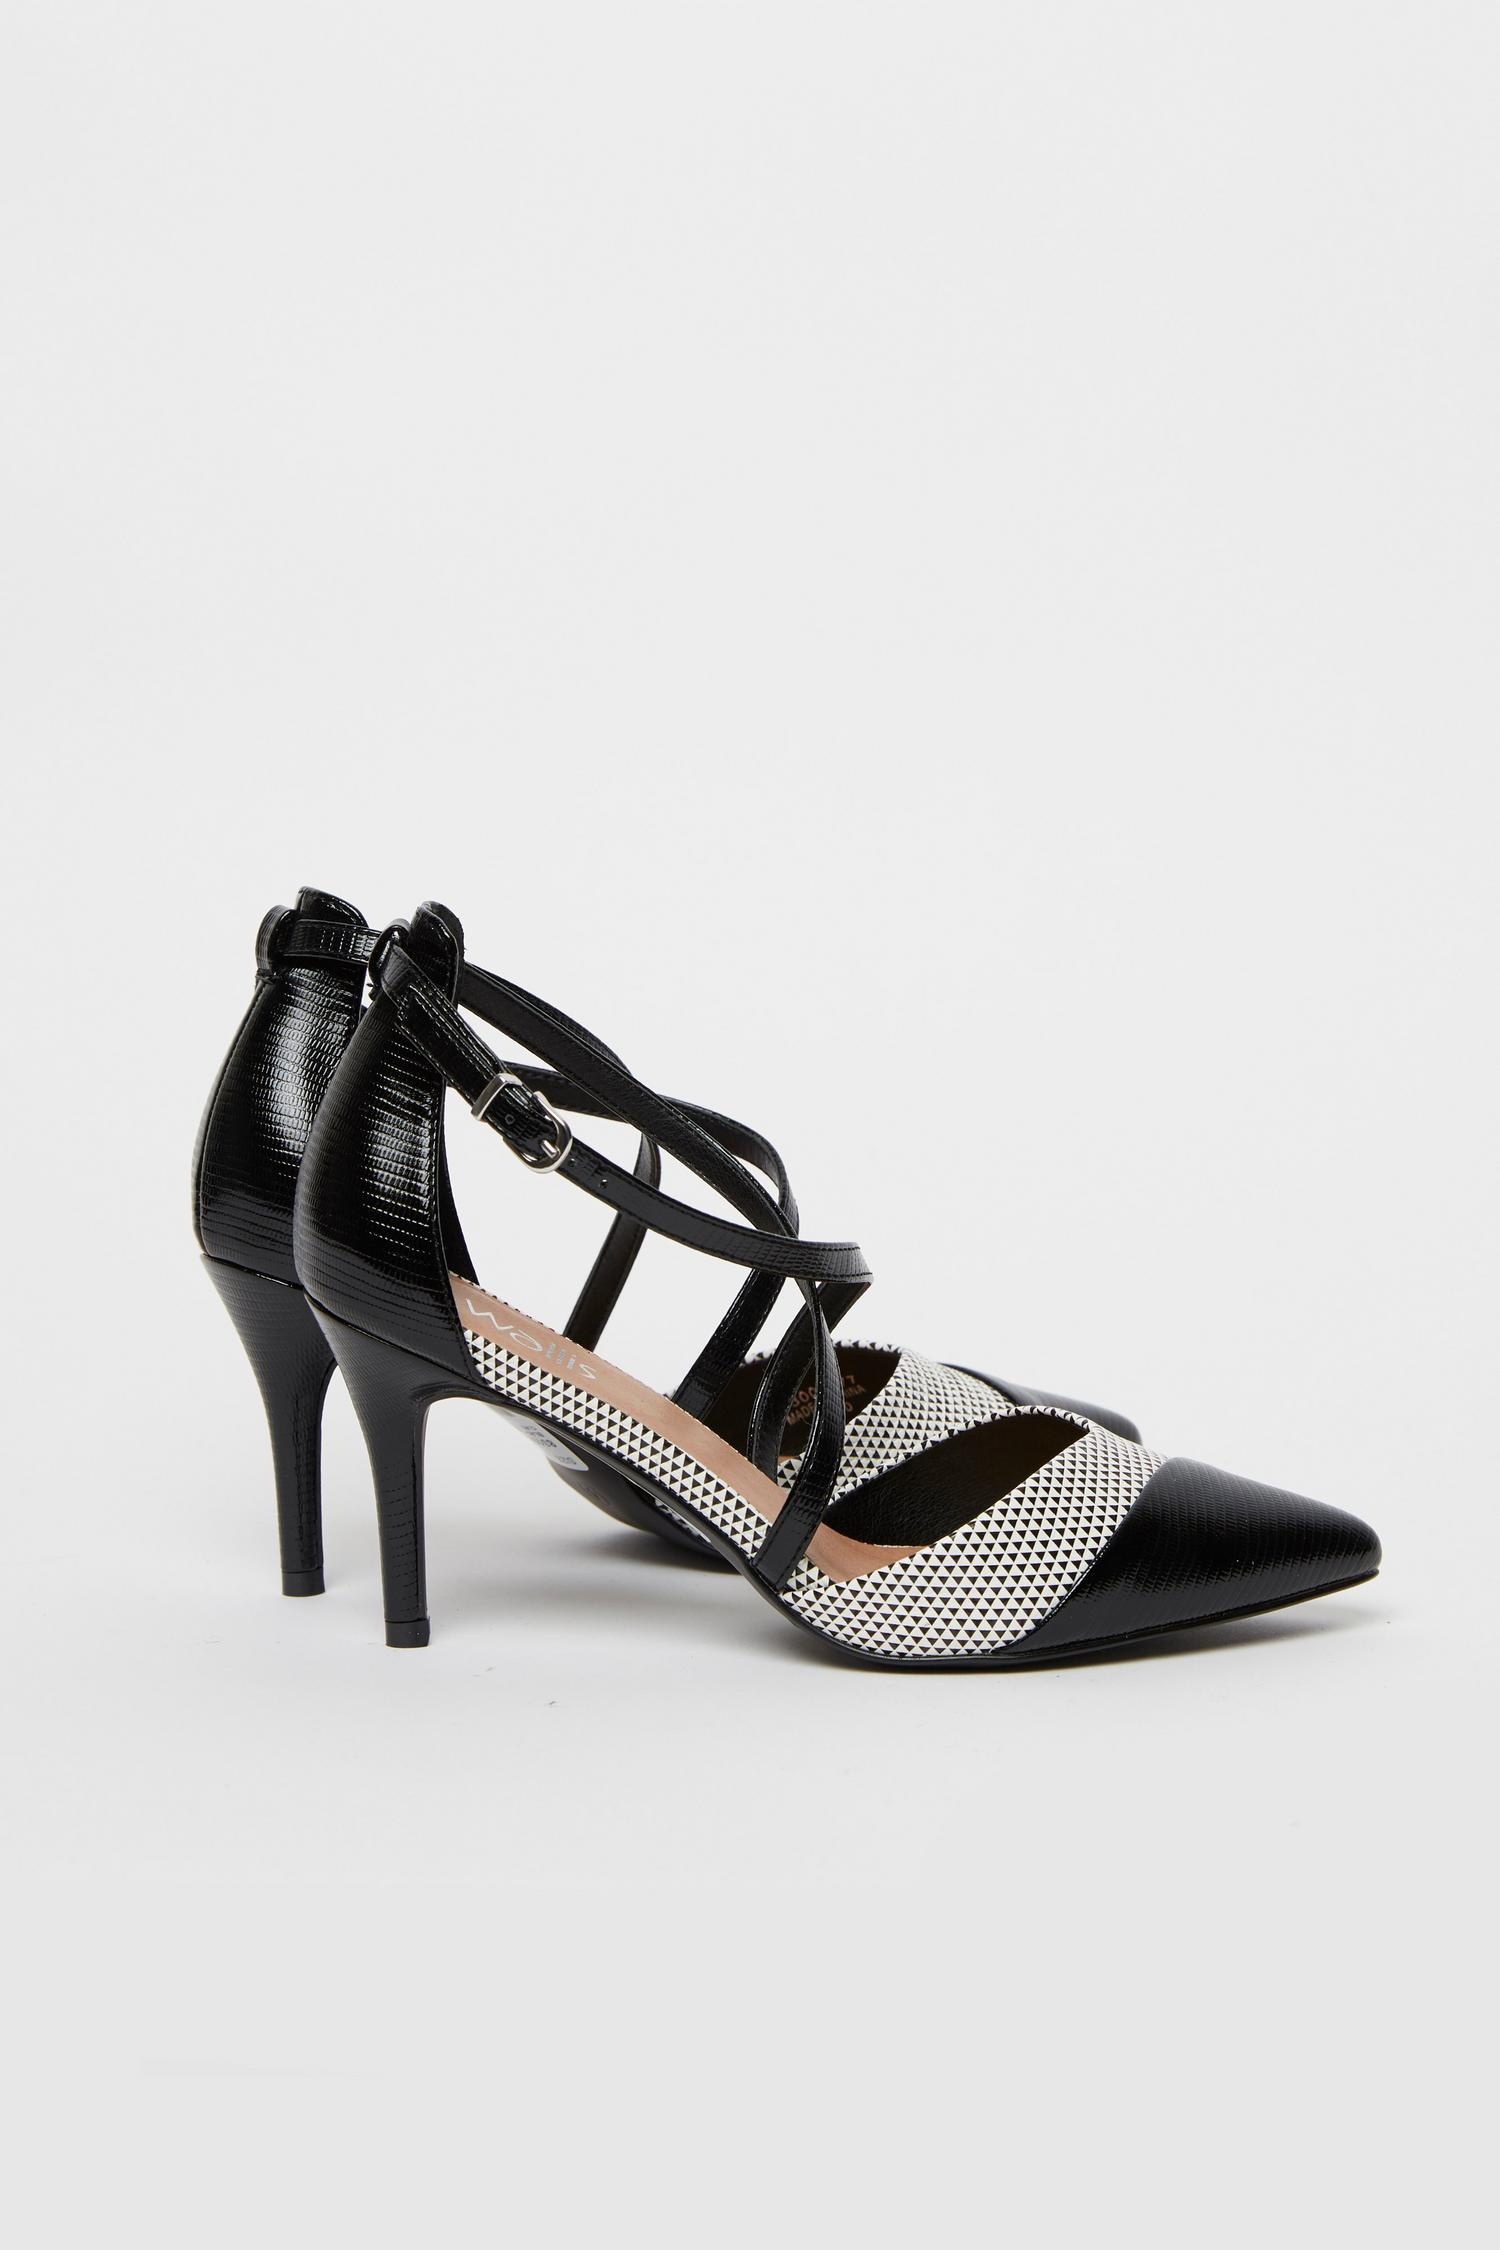 585 Monochrome Cross Strap Heels image number 3